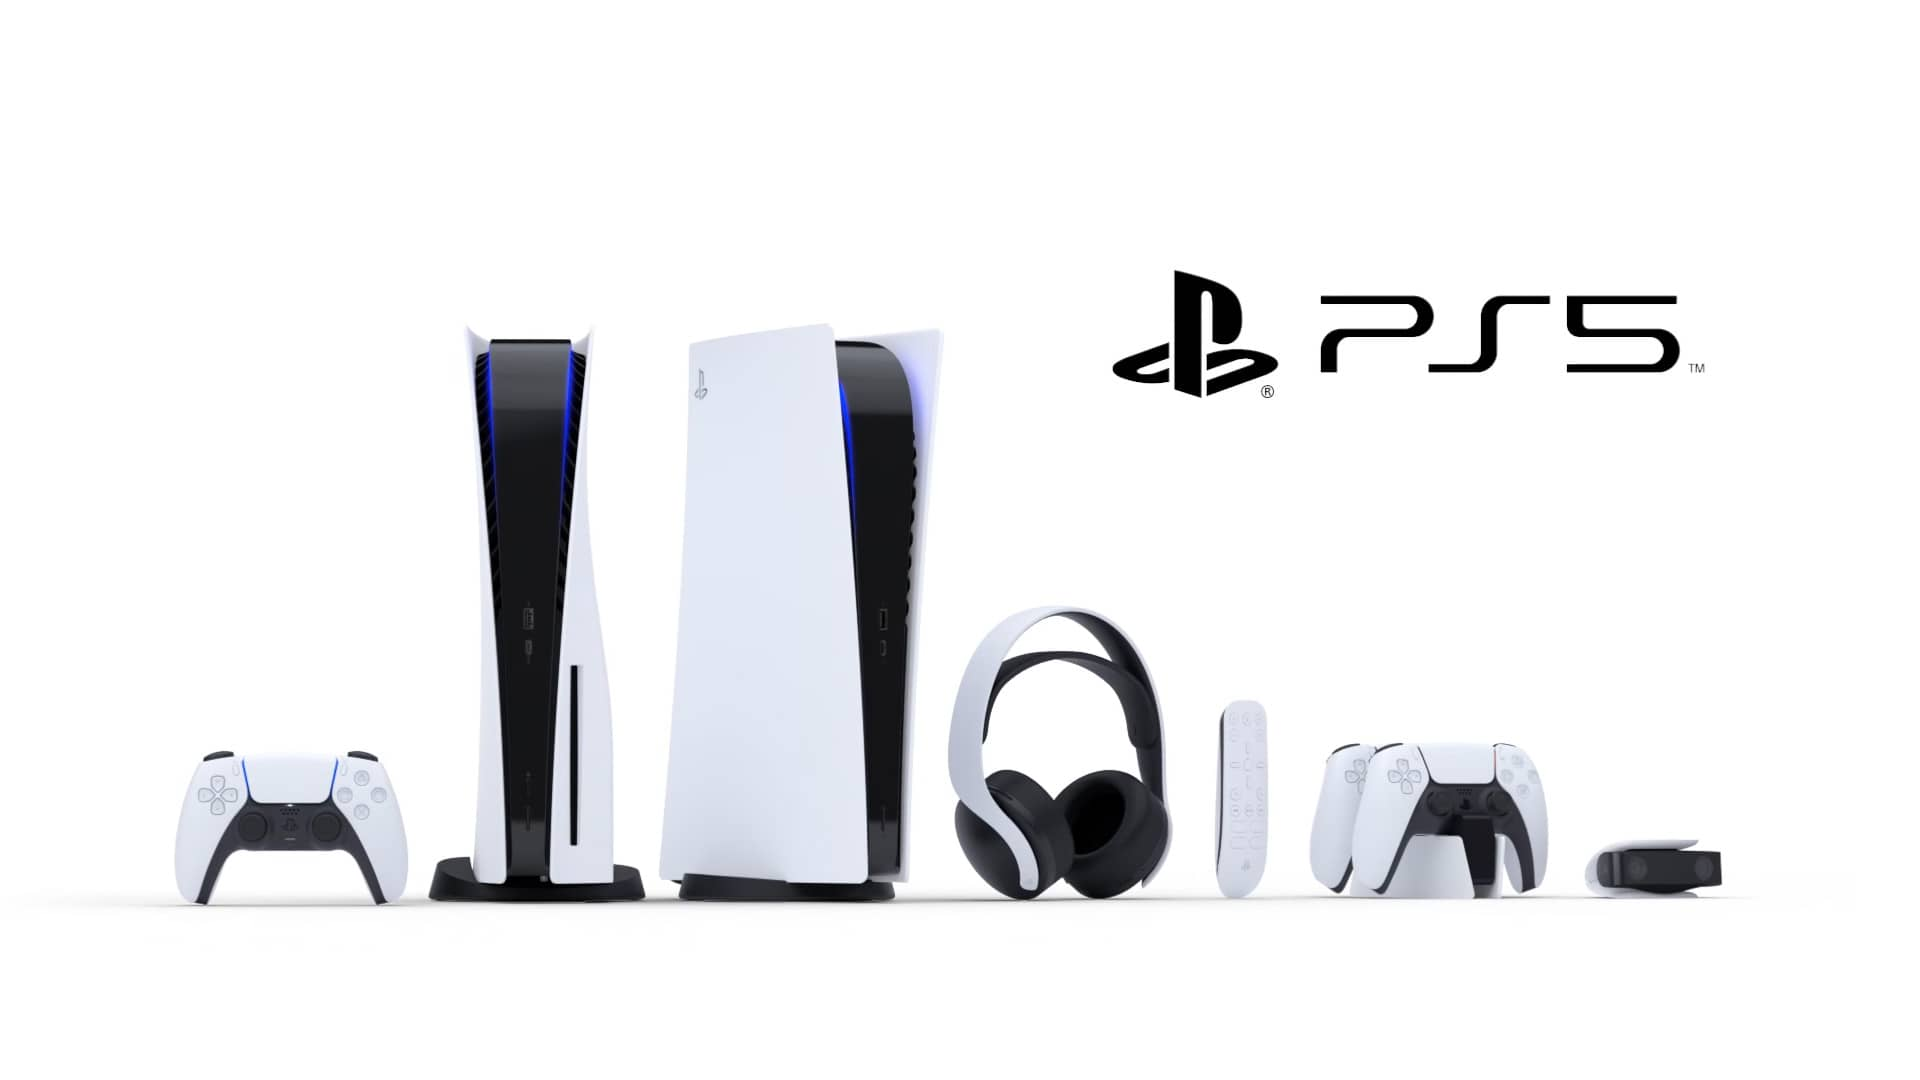 Design PlayStation 5 16